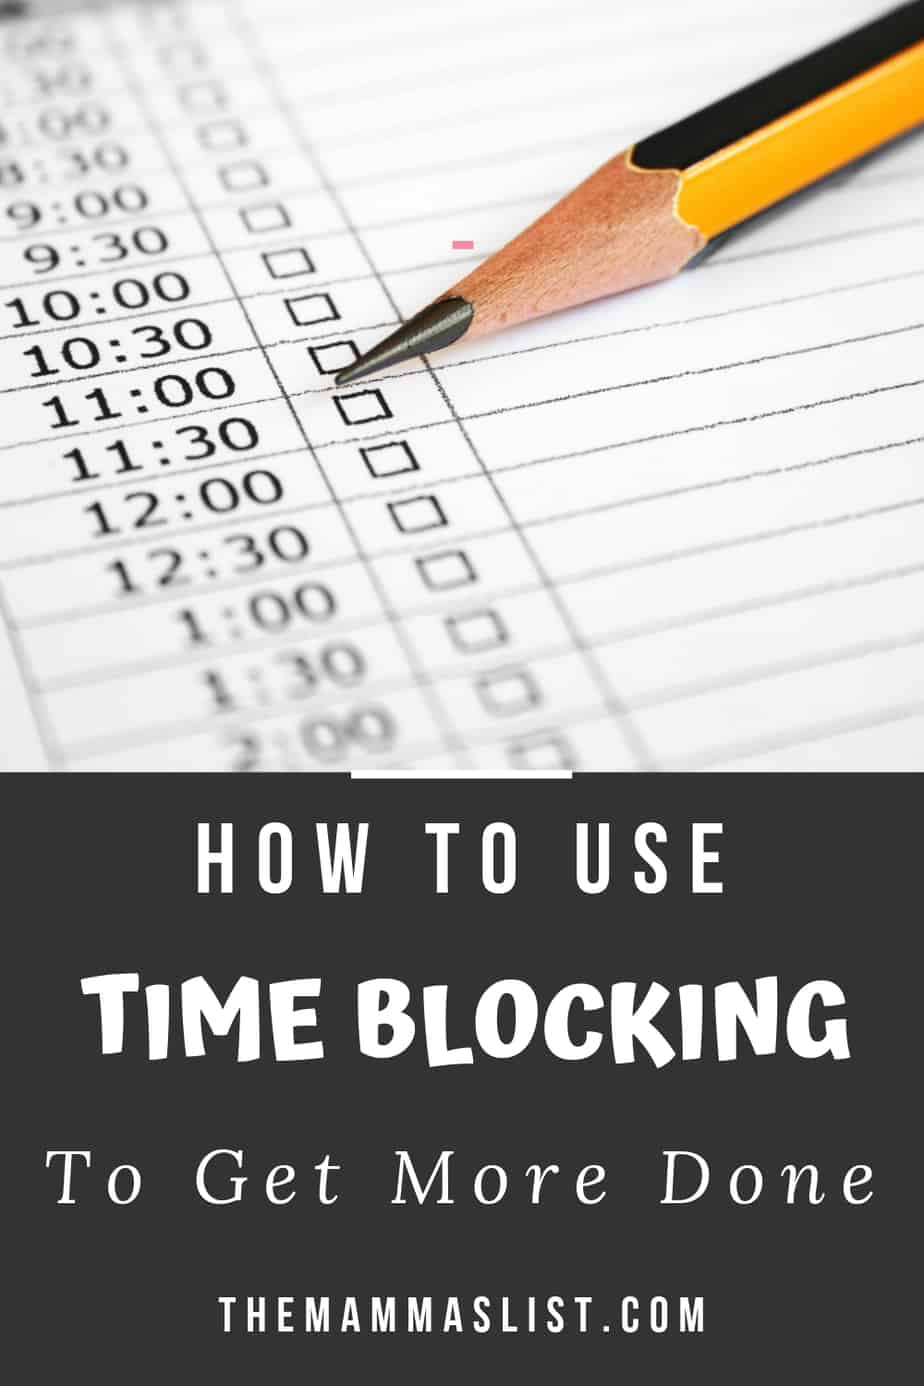 How to implement a time blocking strategy that helps you prioritize, get more done, and schedule your time more efficiently than ever before.